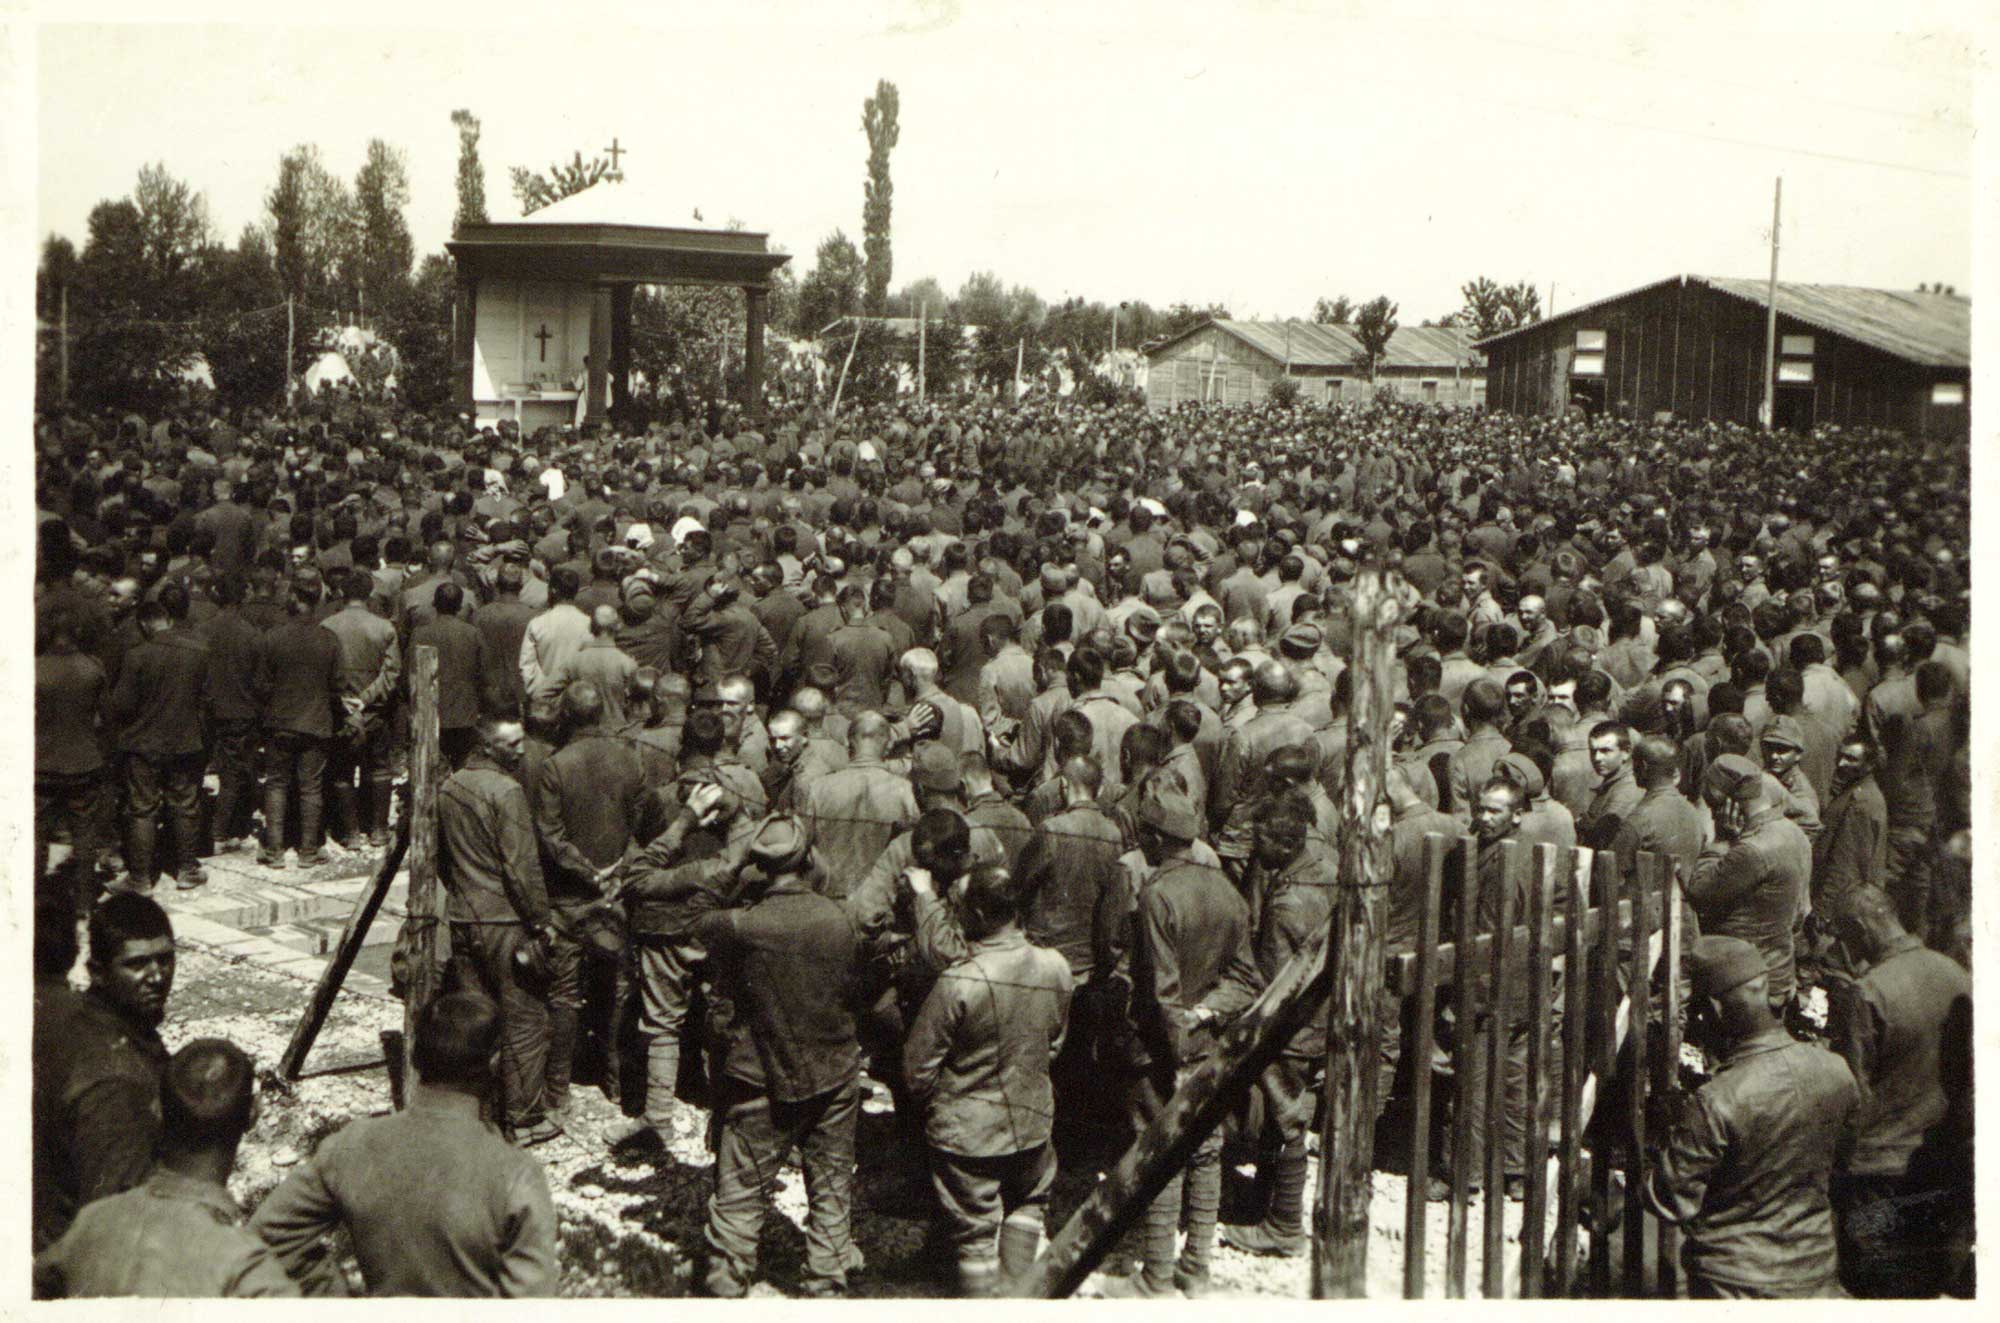 Austro-Hungarian prisoners in an Italian concentration camp attending a Roman Catholic mass, 1917.